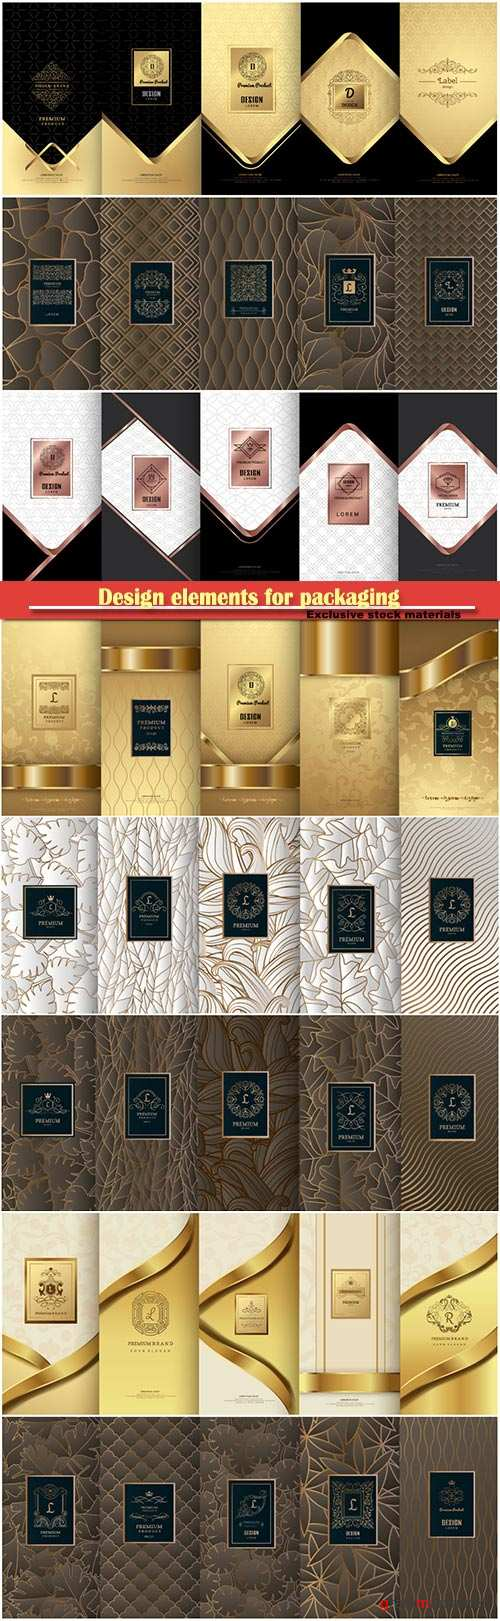 Design elements for packaging, design of luxury products for perfume